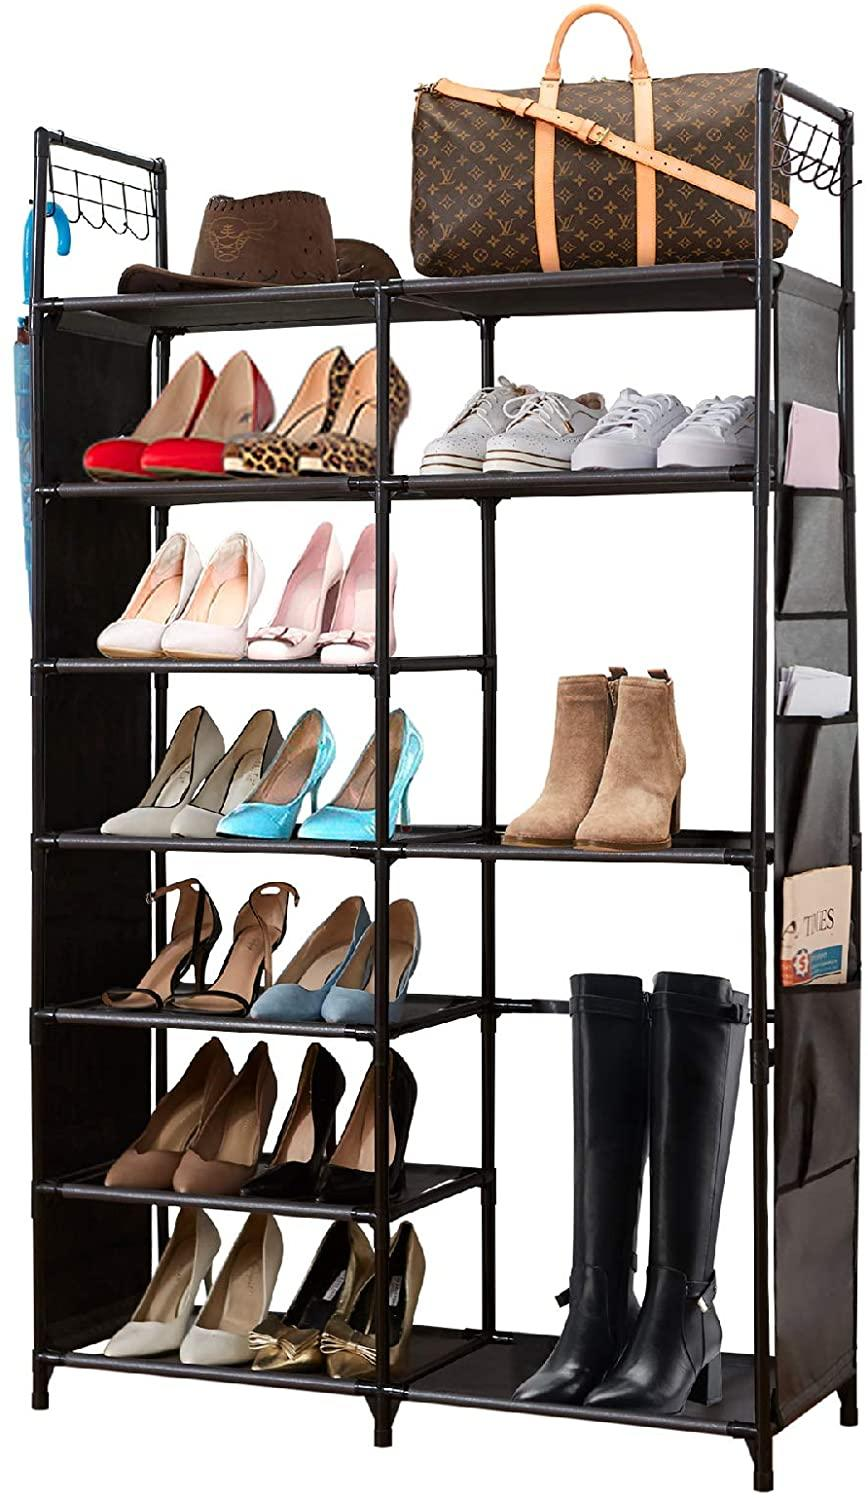 Houyomics Shoe Rack. Image via Amazon.